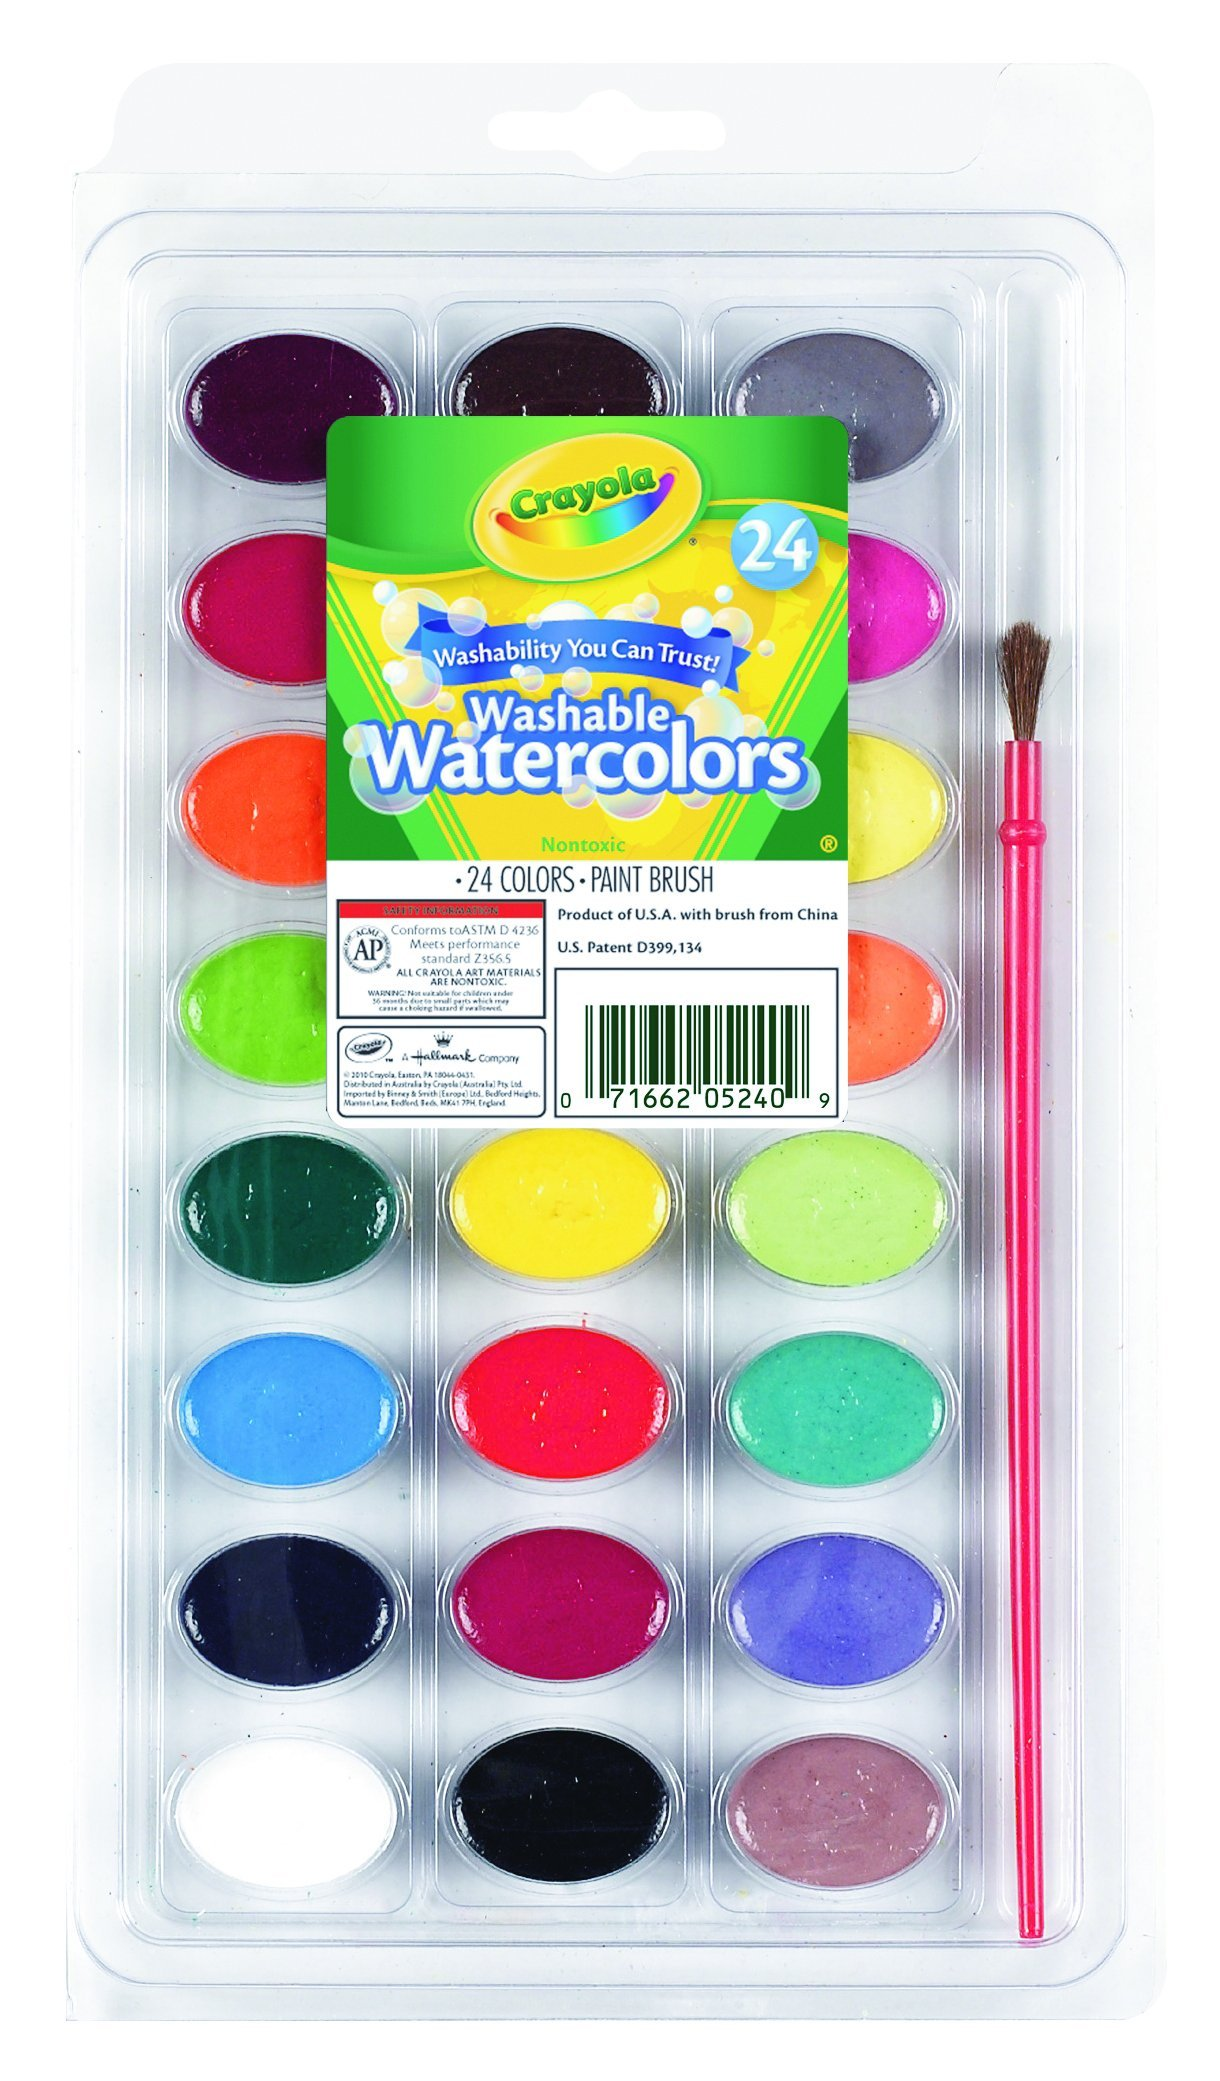 Crayola Colored Pencils 100 Count Walmart Com Con Imagenes